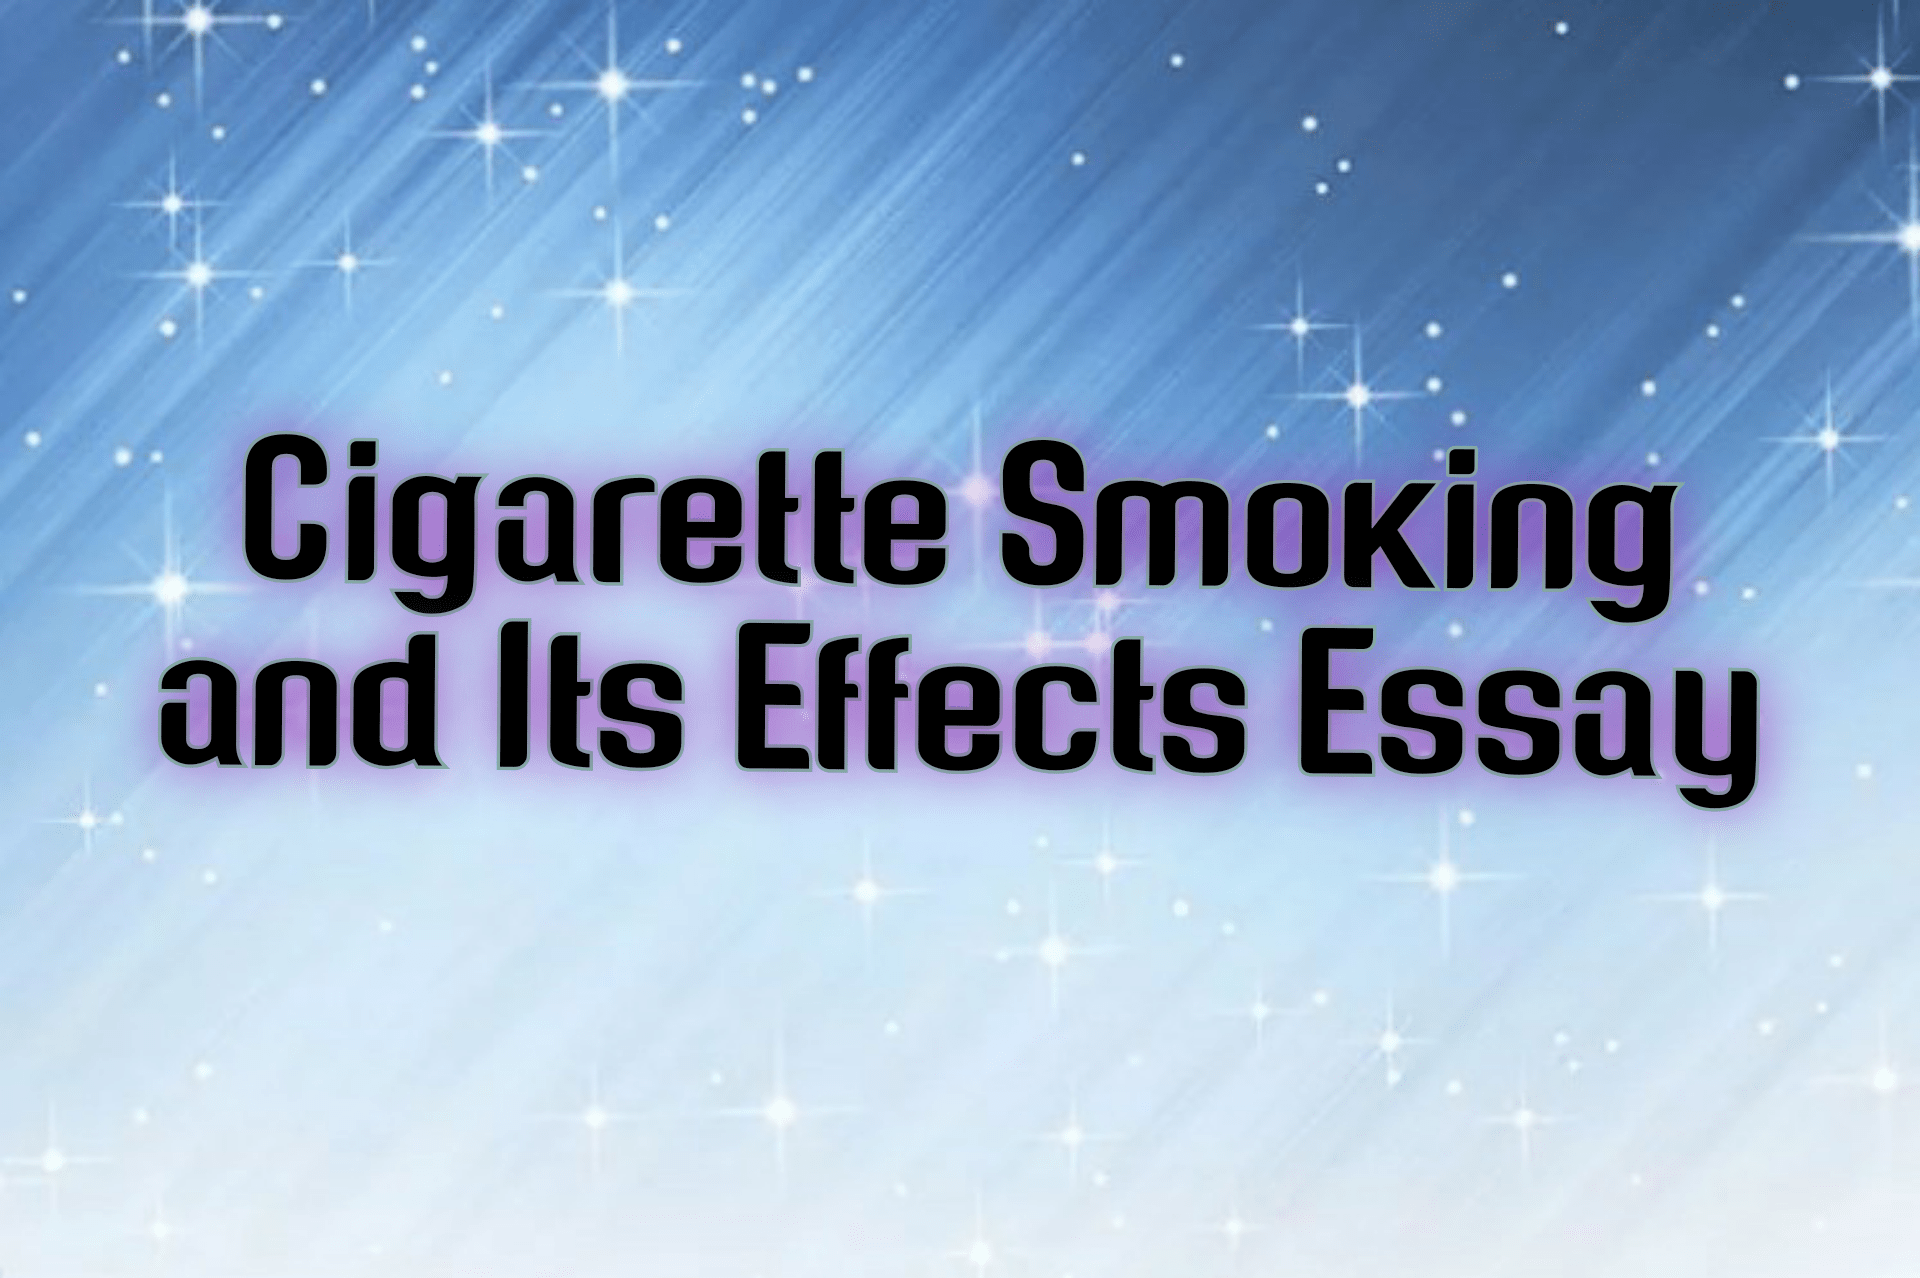 Cigarette Smoking and Its Effects Essay 10